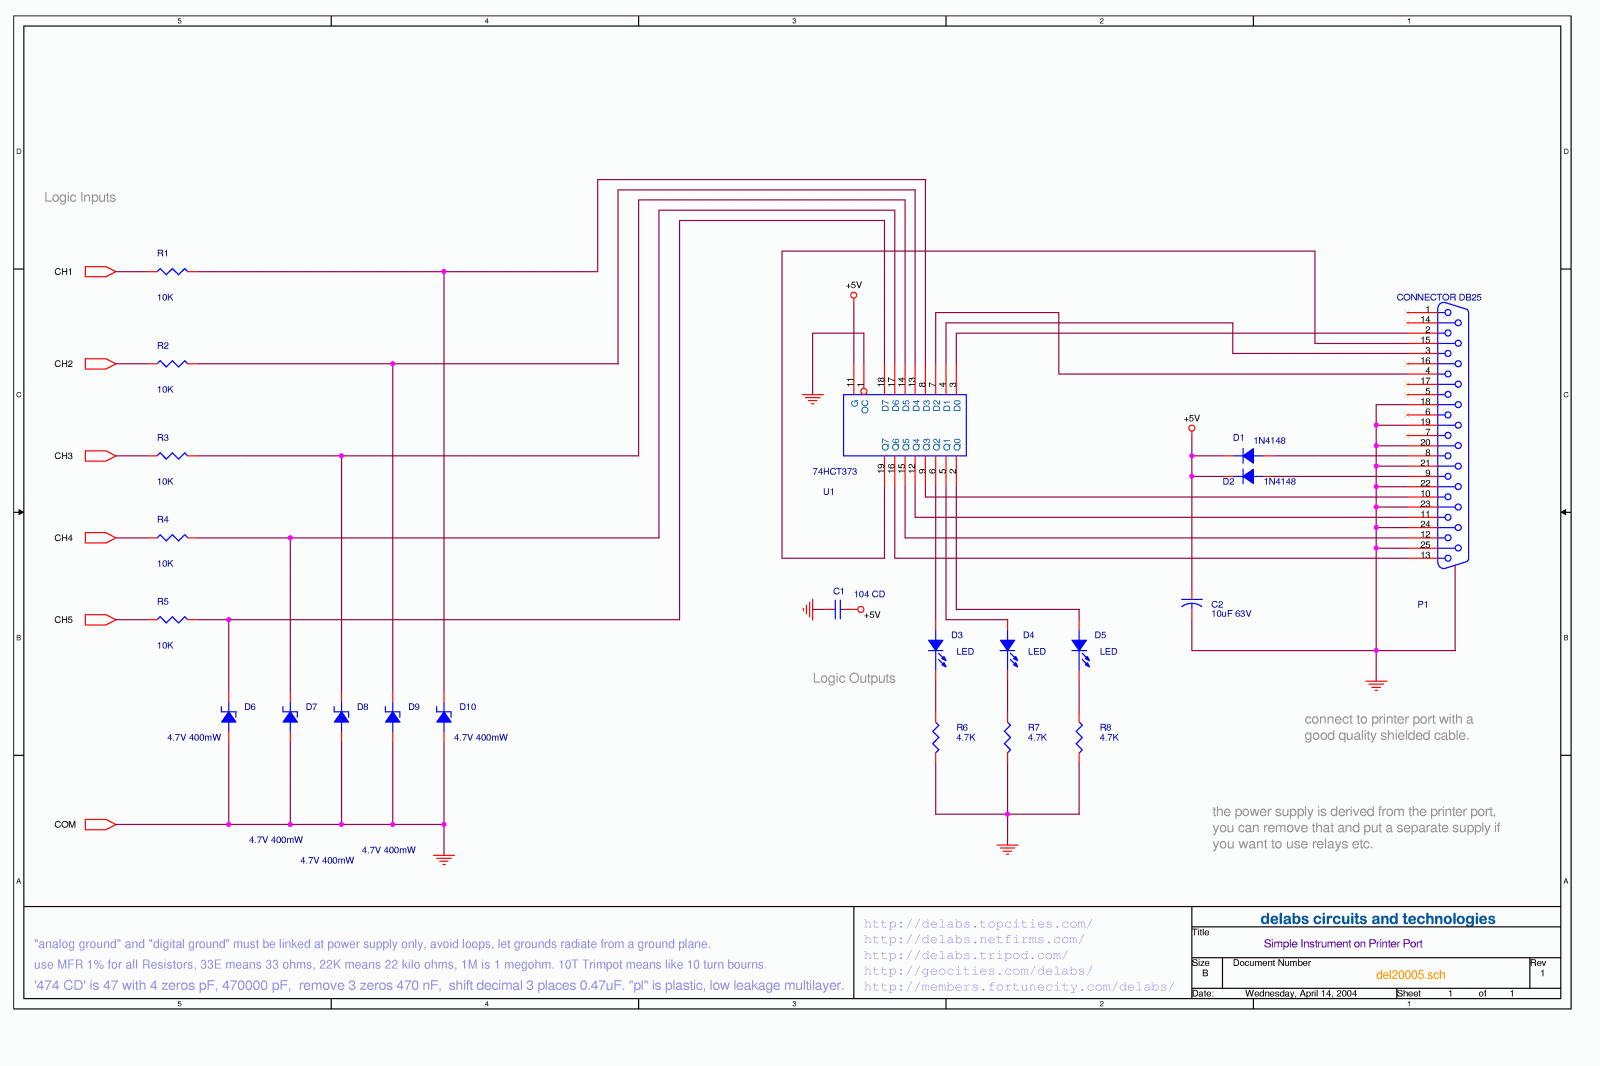 Tag Computer Interface Delabs Schematics Electronic Circuits Basic Triacscr Projects Tutorial Simple Printer Port